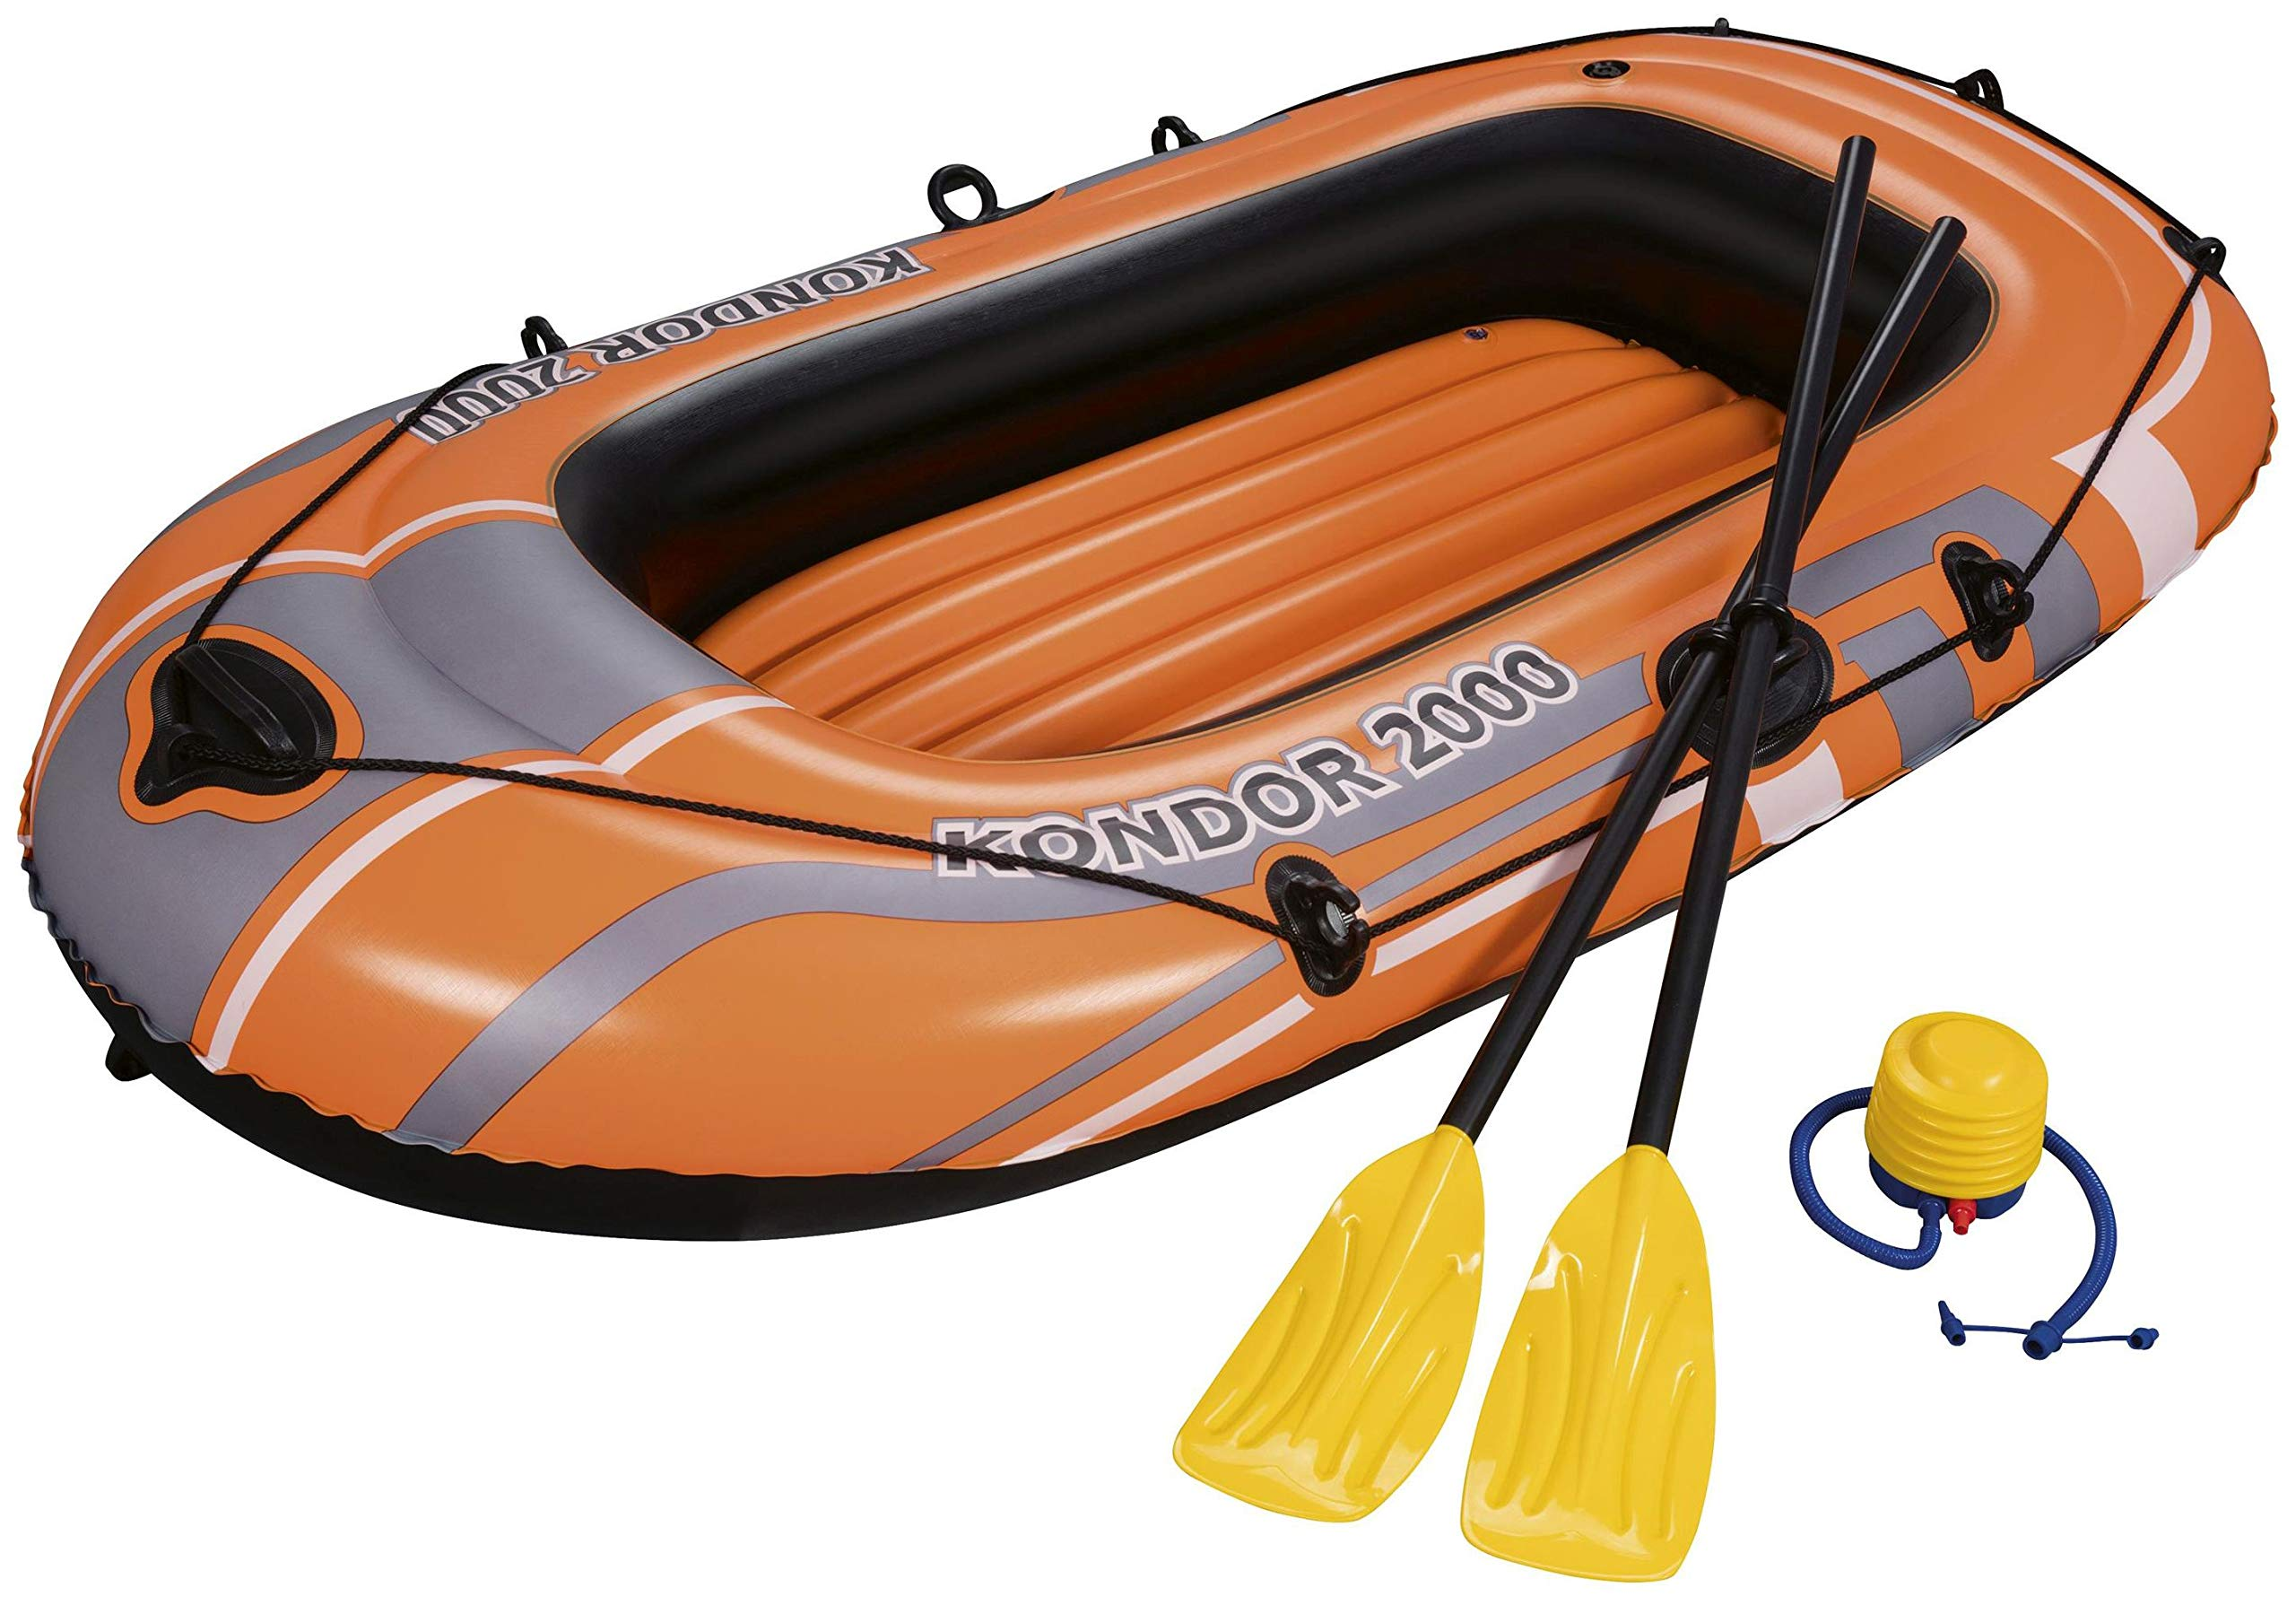 Bestway 2 person Inflatable Raft Boat Dingy Set including 2 Oars Foot Pump NEW